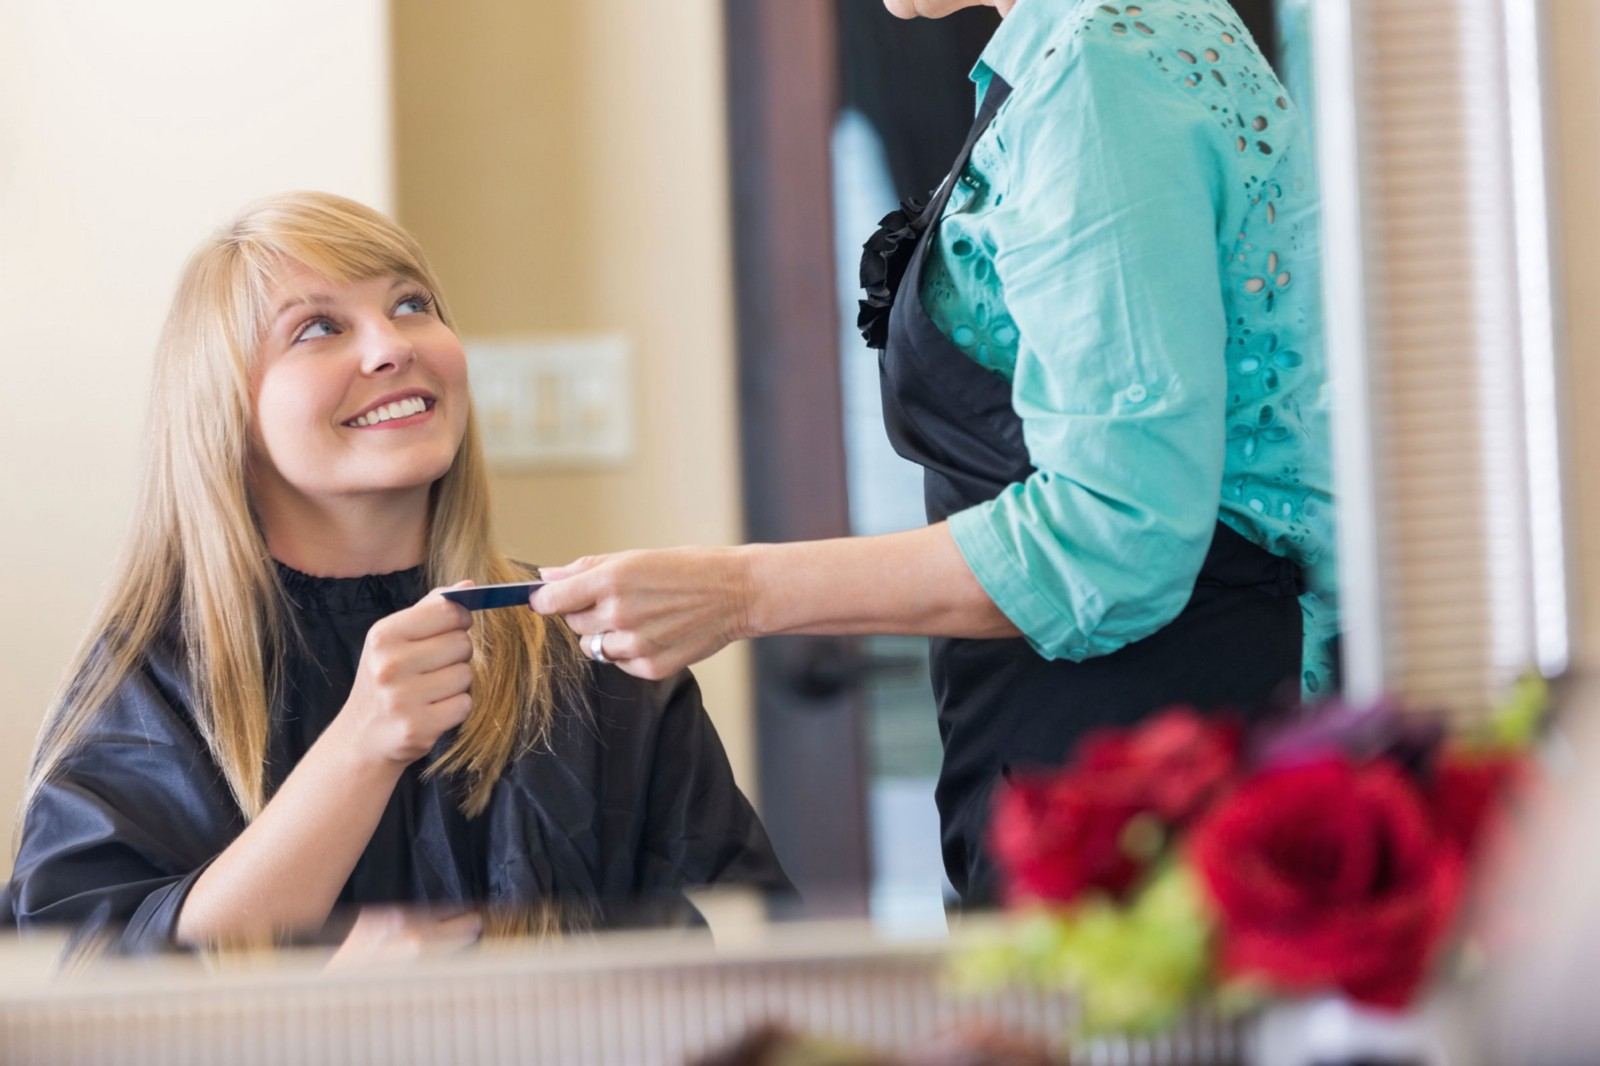 hair beauty industry happy stylist tell help salons makes lucky secrets hairstylist stylists tipping tips things